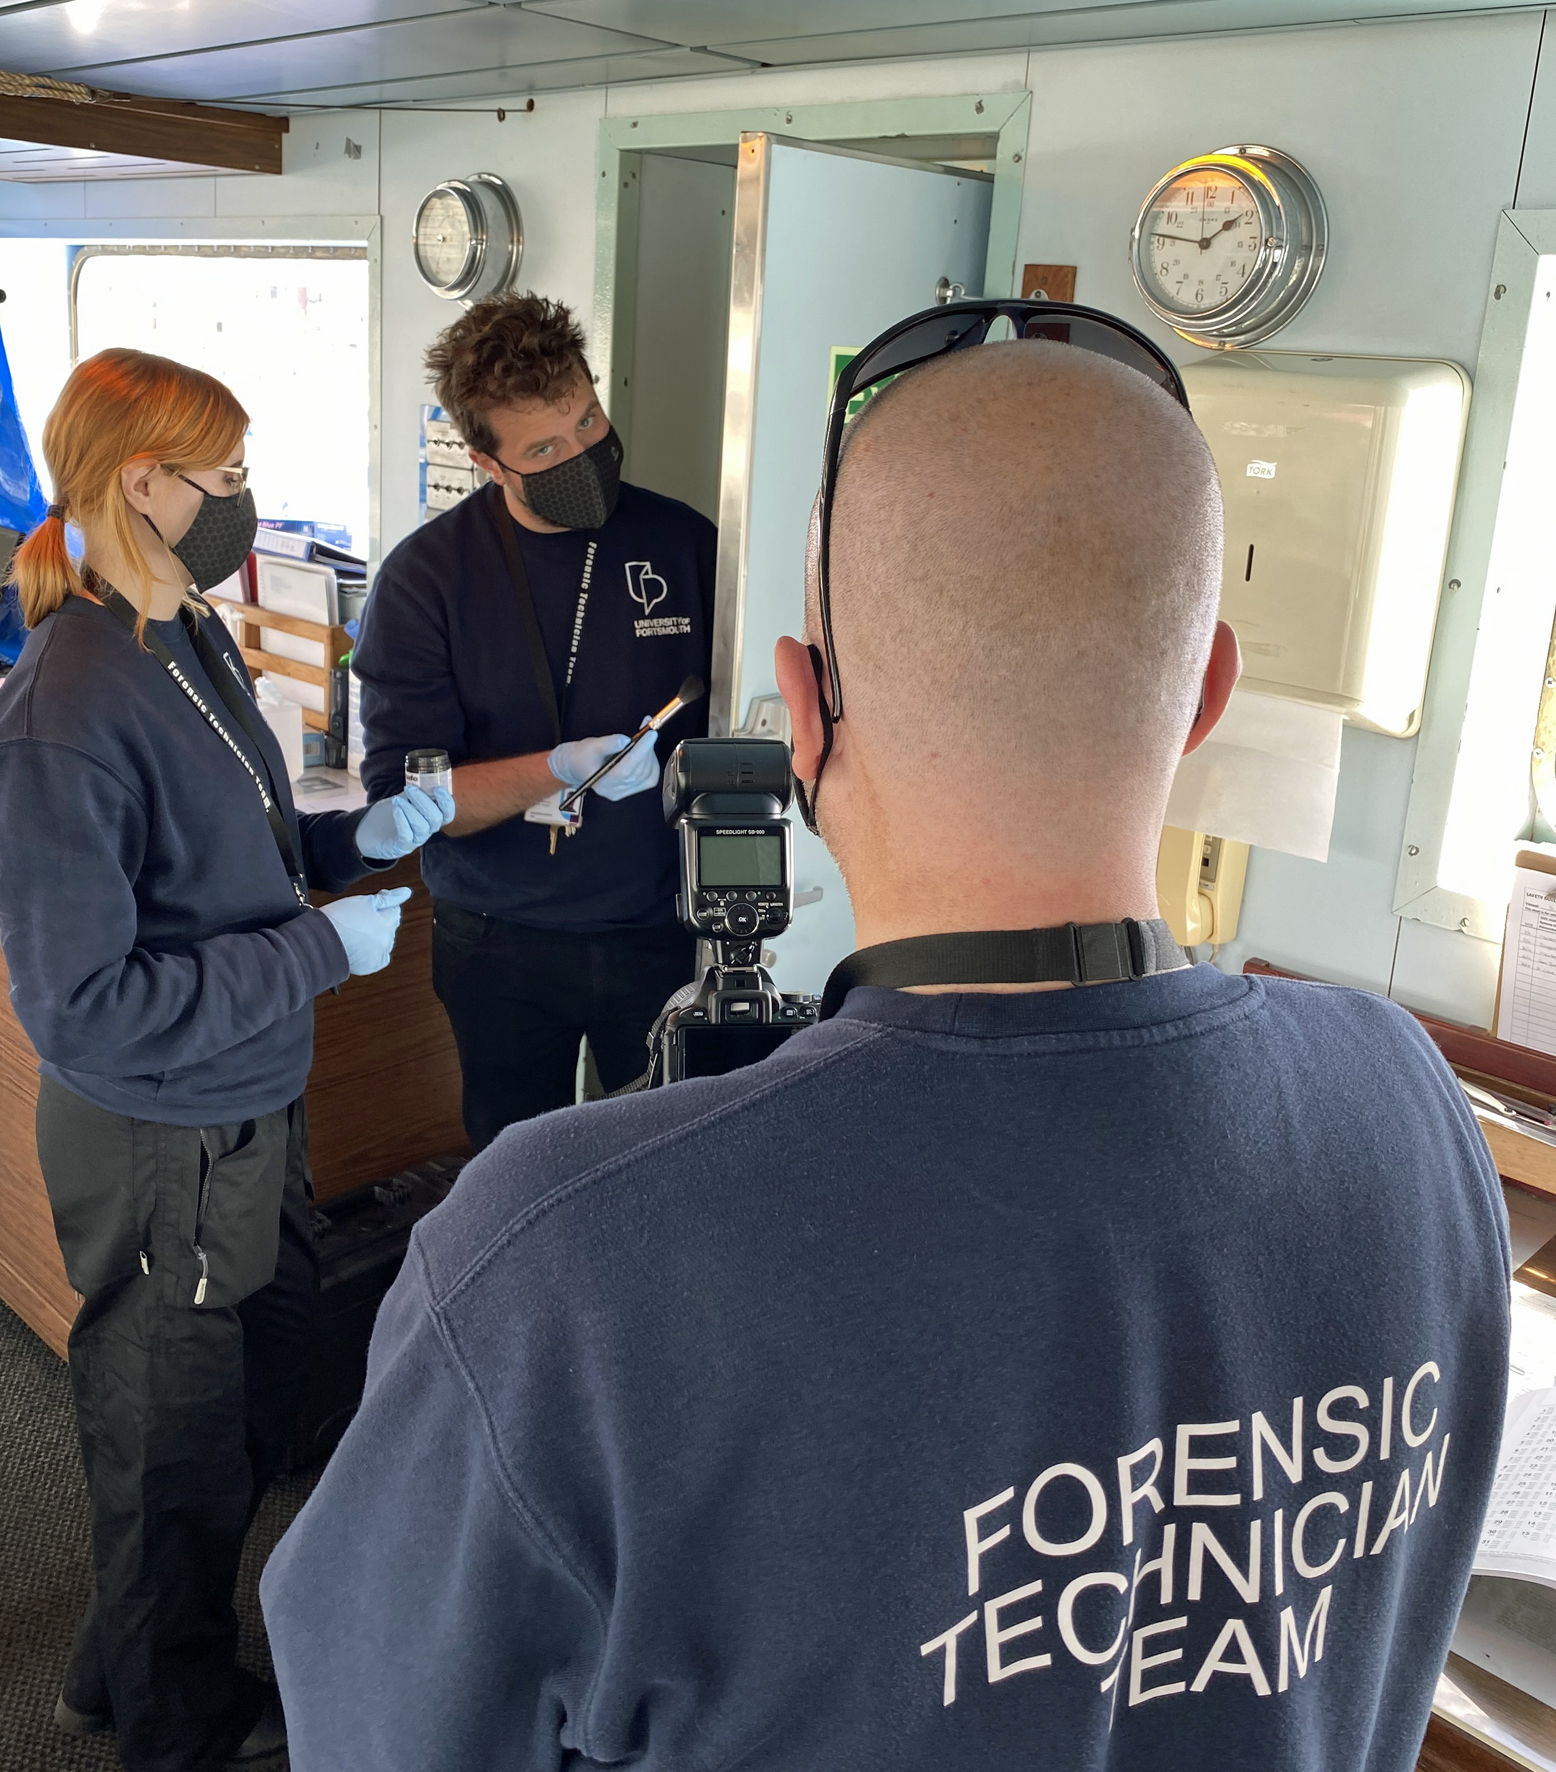 Forensic technicians onboard Wightlink's St Faith Ferry